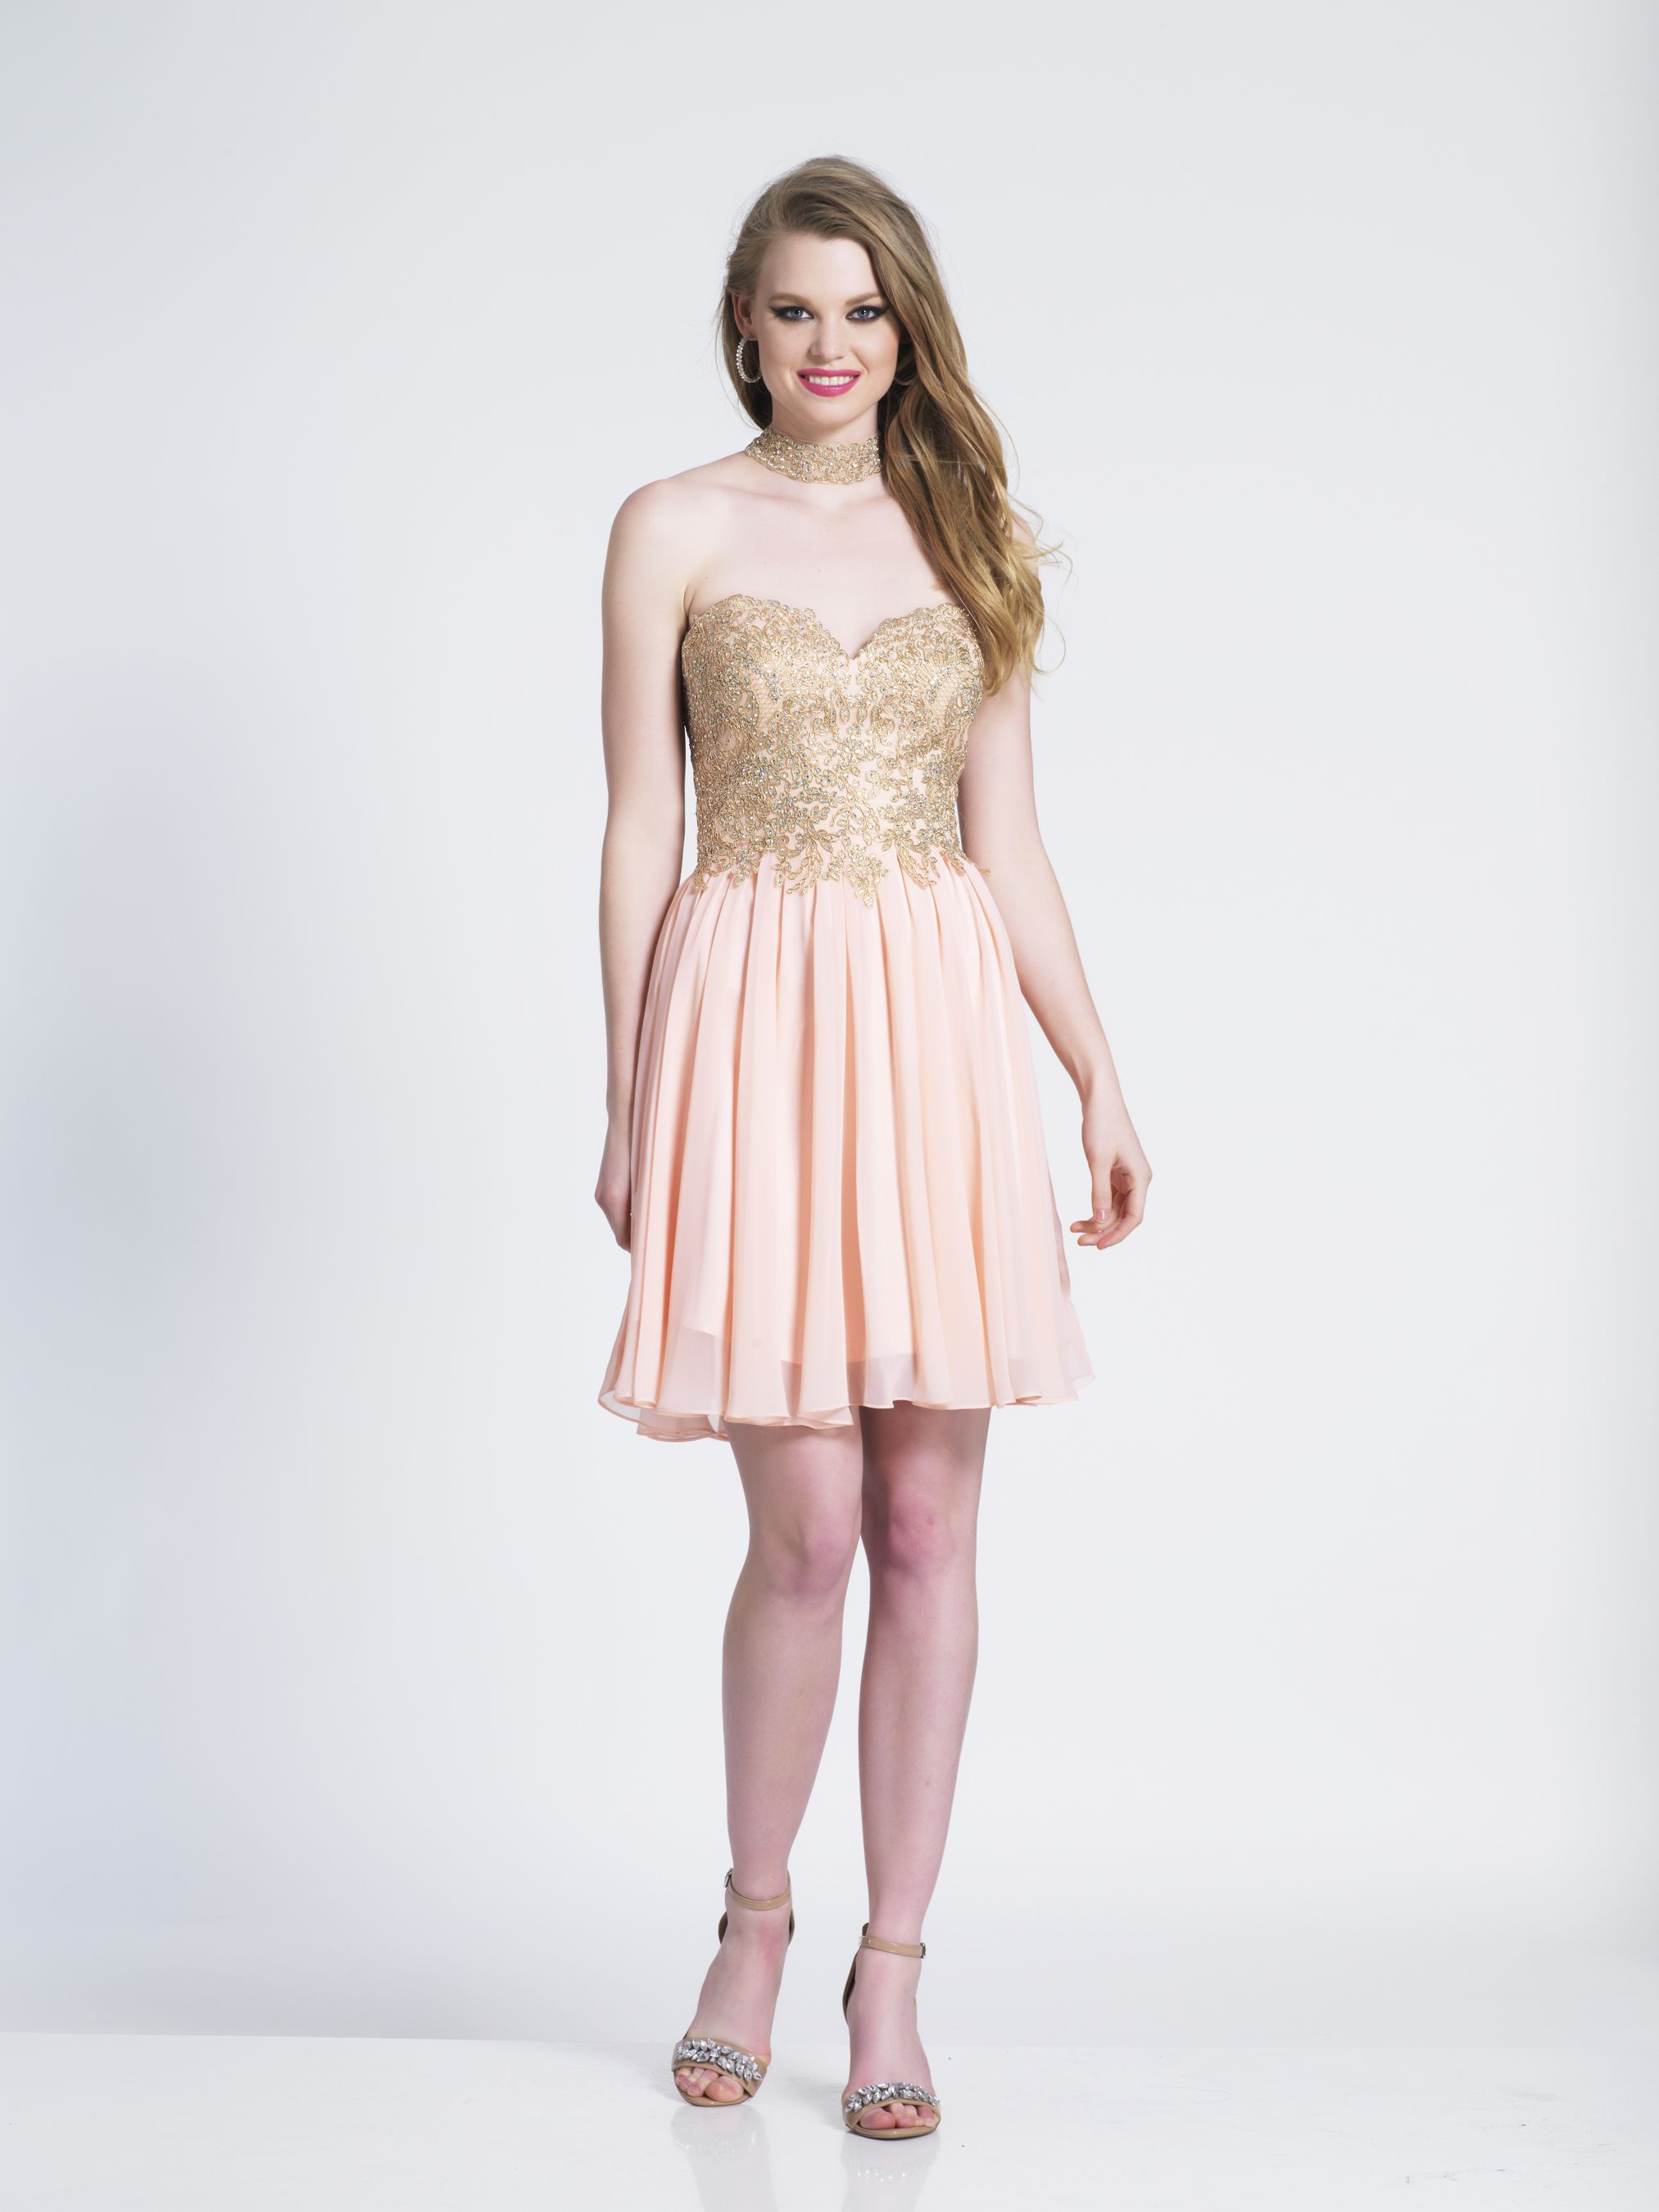 Embellished sweetheart racer back homecoming dress by dave and